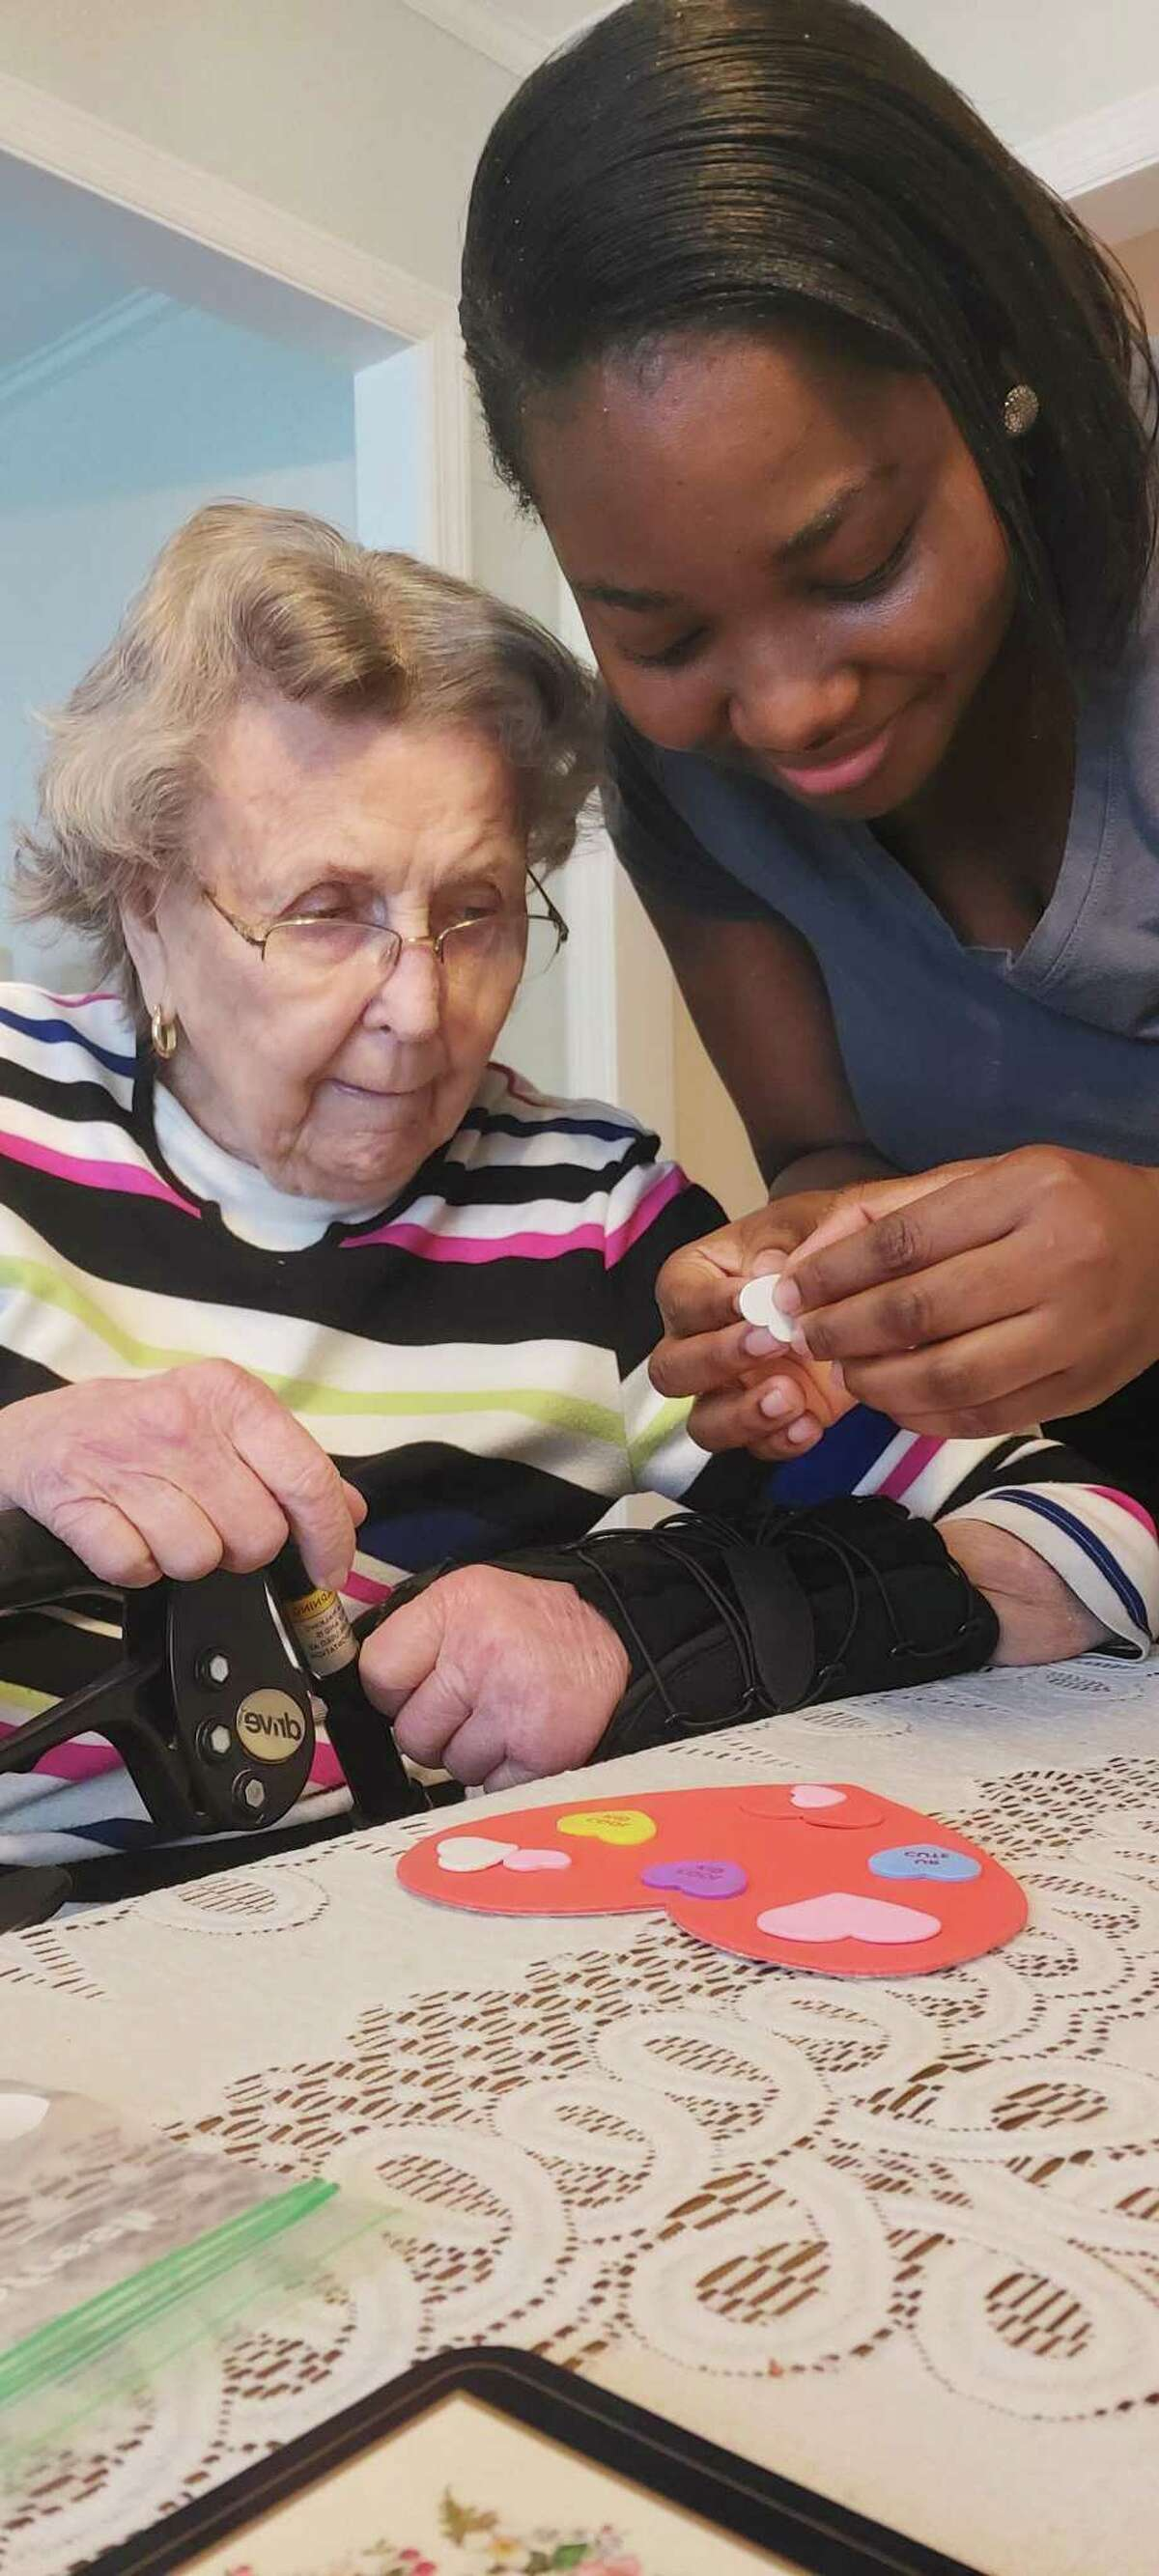 Assisted Living Services, (ALS), always takes caregiving to heart. Precious Bobson is one of the many compassionate caregivers at the home care agency who brightens up the daily life of their clients like Elaine Kuhrt with fun, and interactive activities.